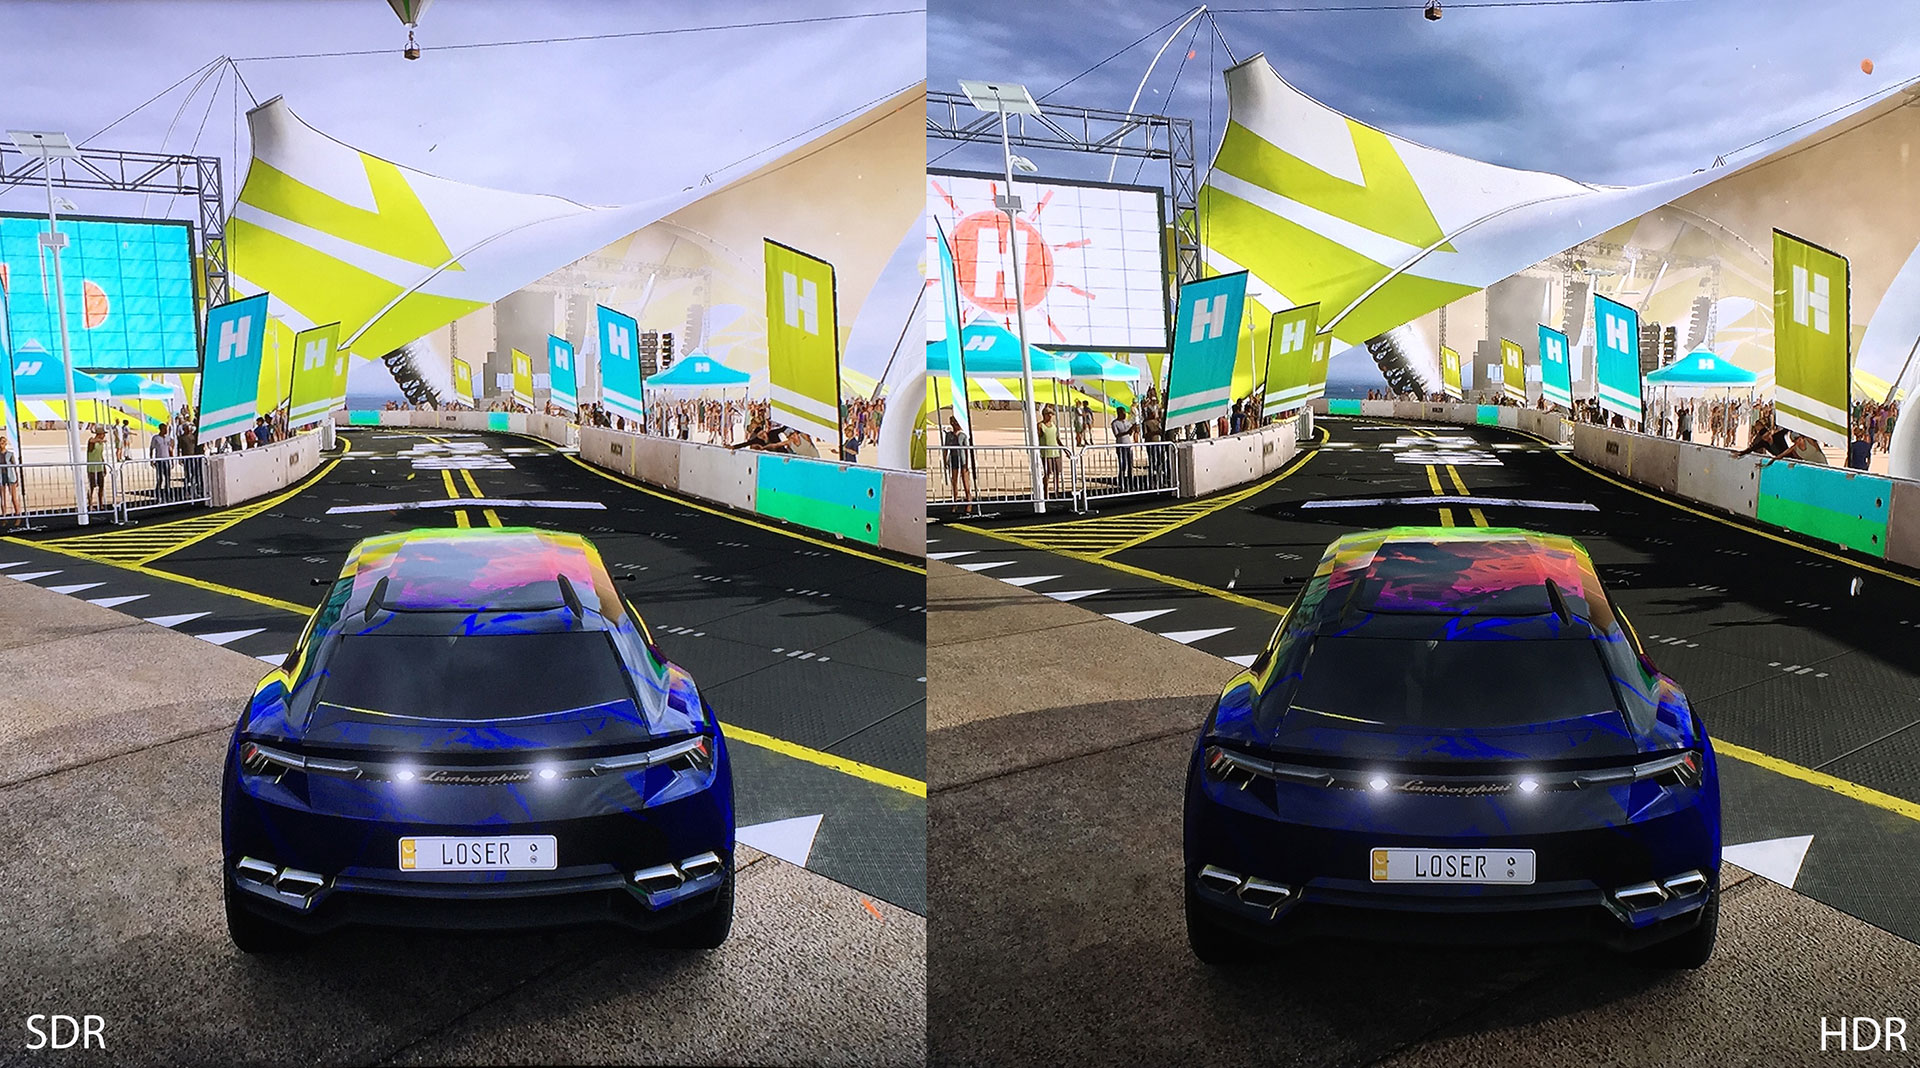 HDR at 1080p or no HDR at 3440x1440? Actually a tricky decision!